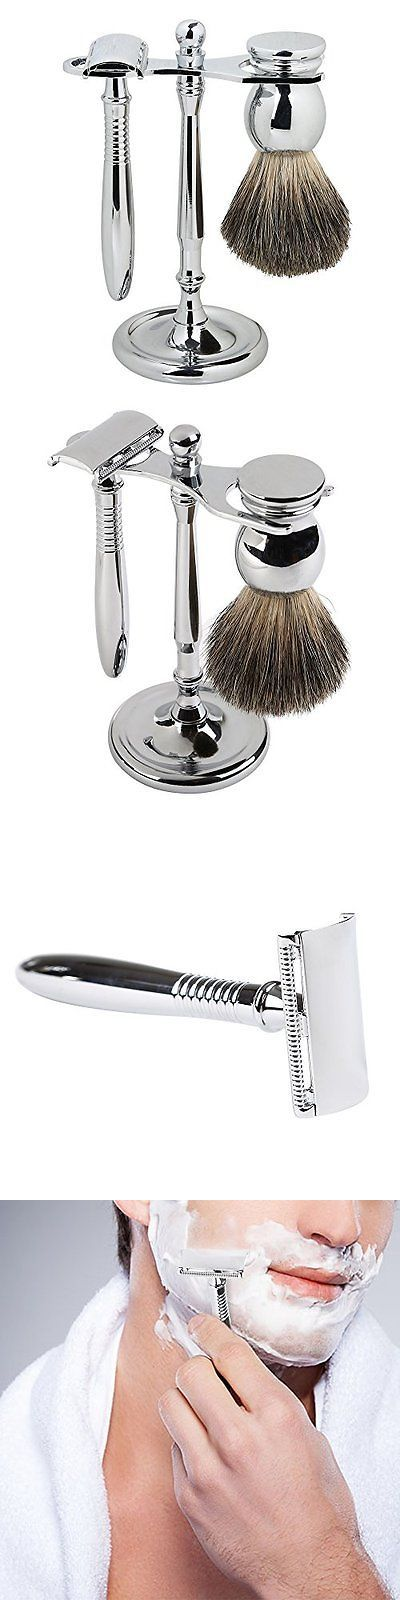 17 best ideas about grooming kit on pinterest beard grooming kits stationa. Black Bedroom Furniture Sets. Home Design Ideas